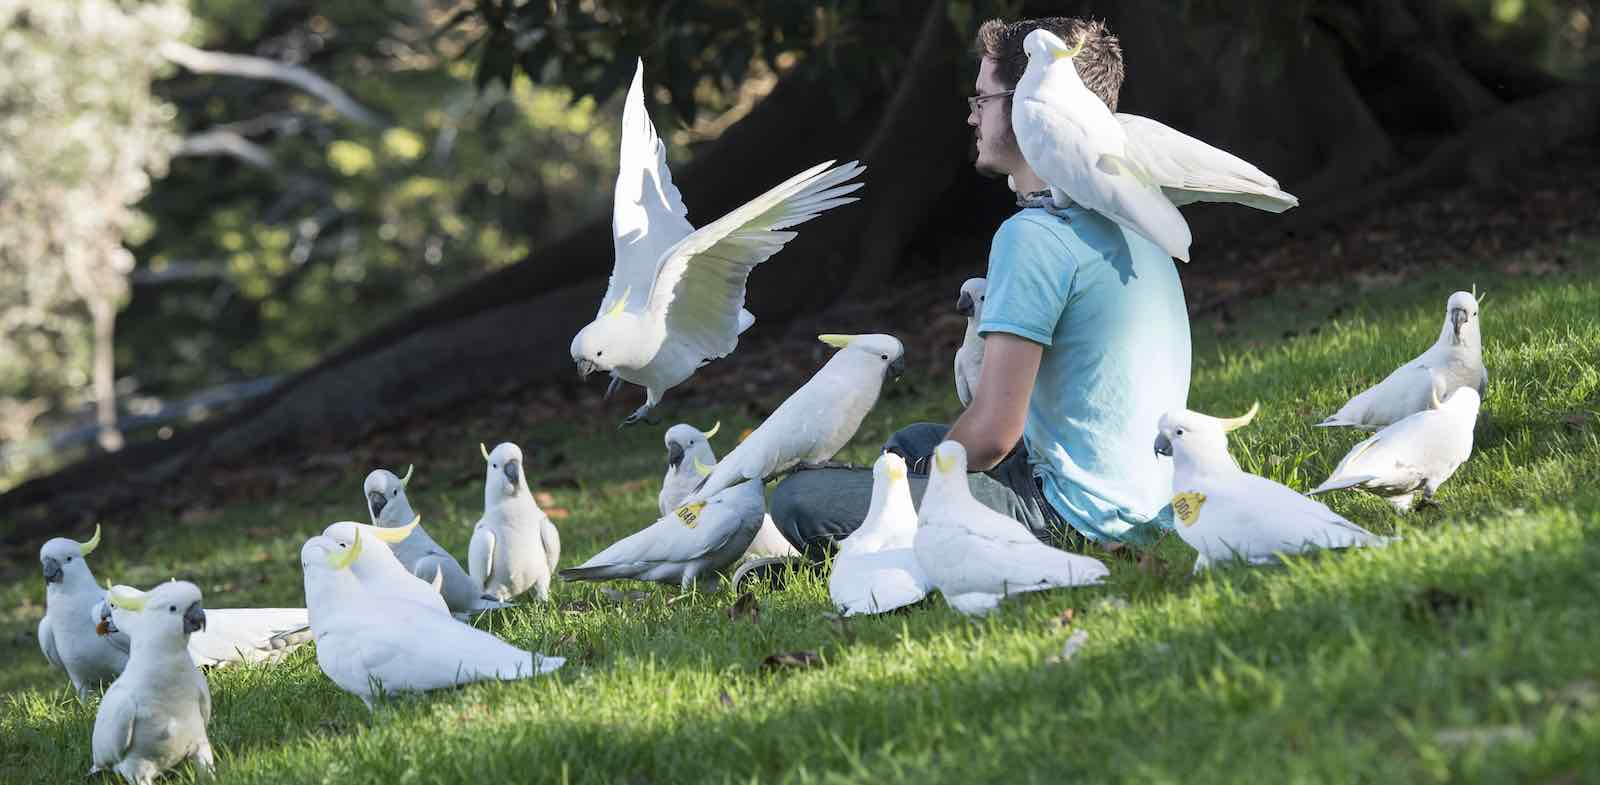 American tourist Charles Precht enjoys the company of cockatoos in the Royal Botanical Gardens, Sydney (Photo: James D. Morgan/Getty)